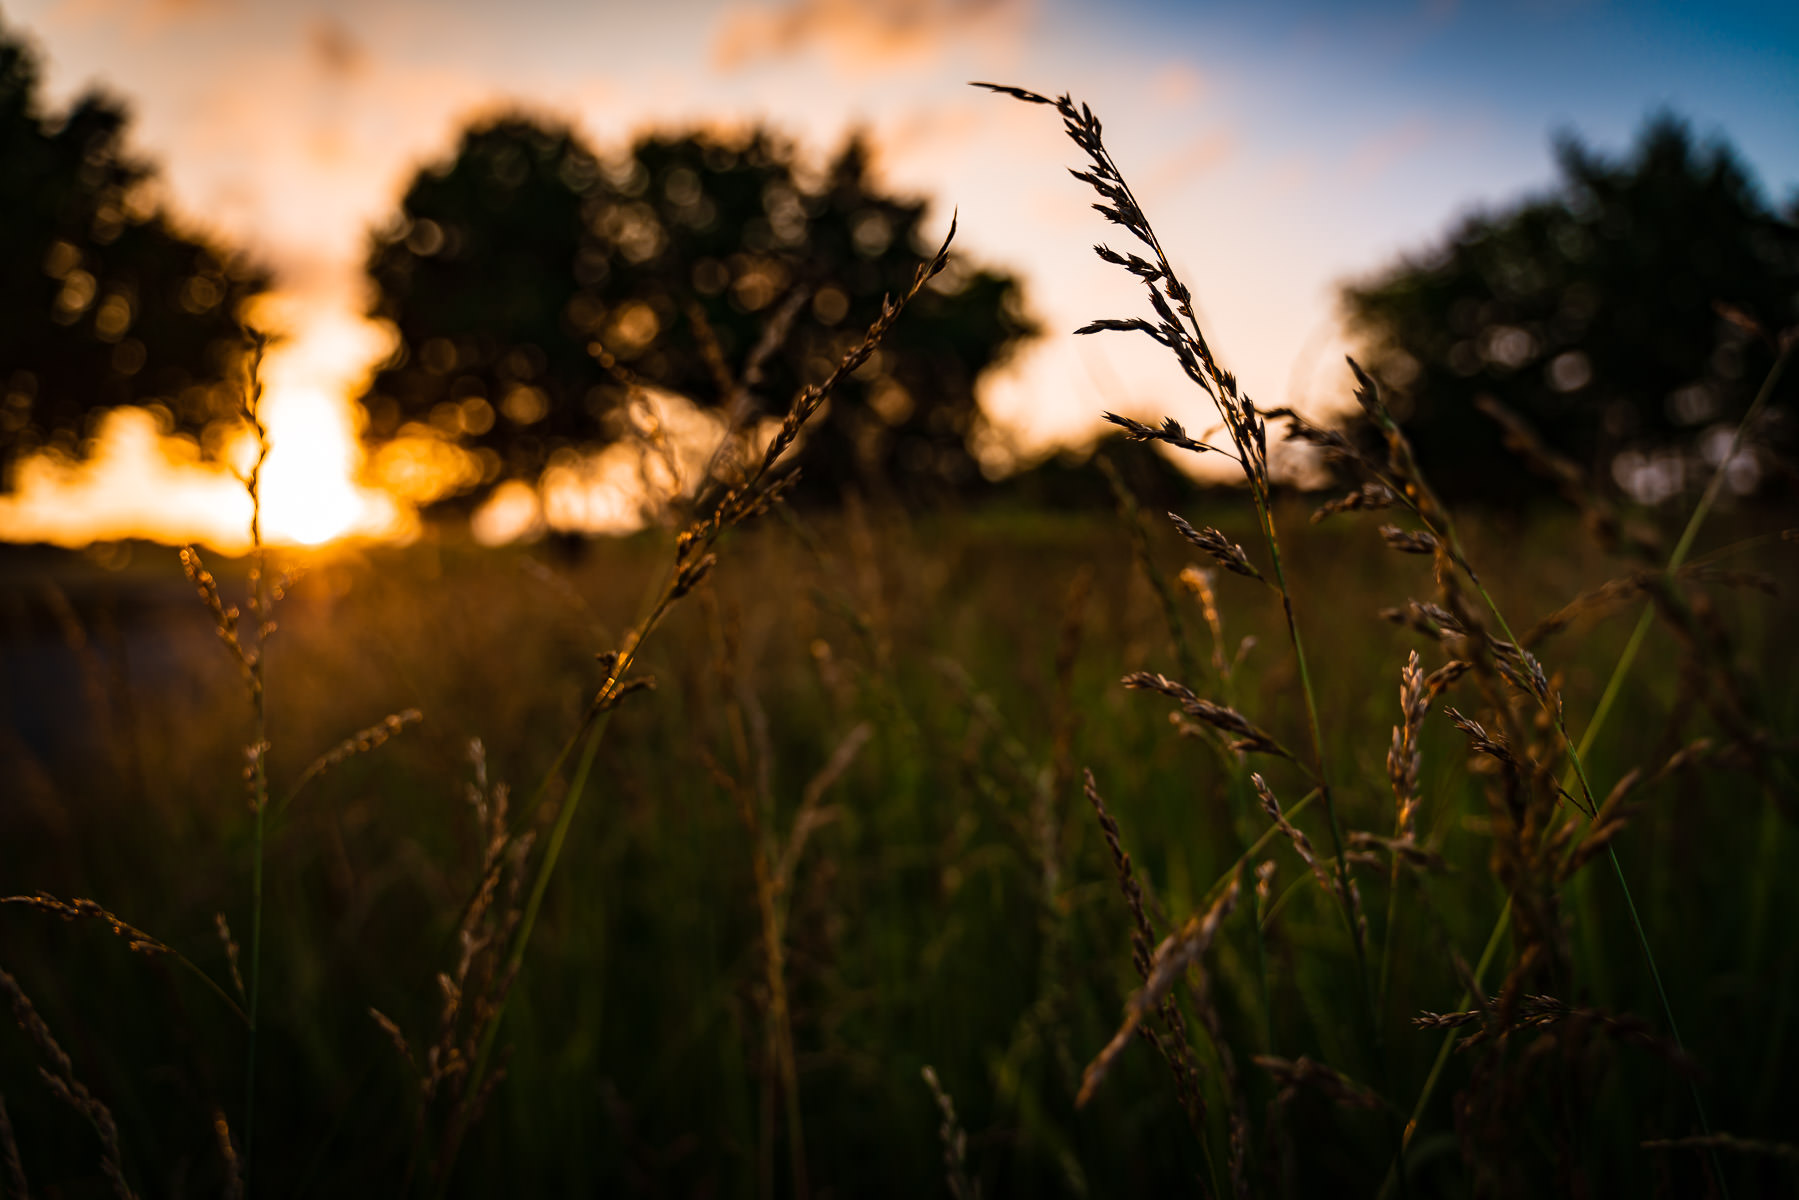 The sun sets on tall grass in a field at McKinney, Texas' Erwin Park.